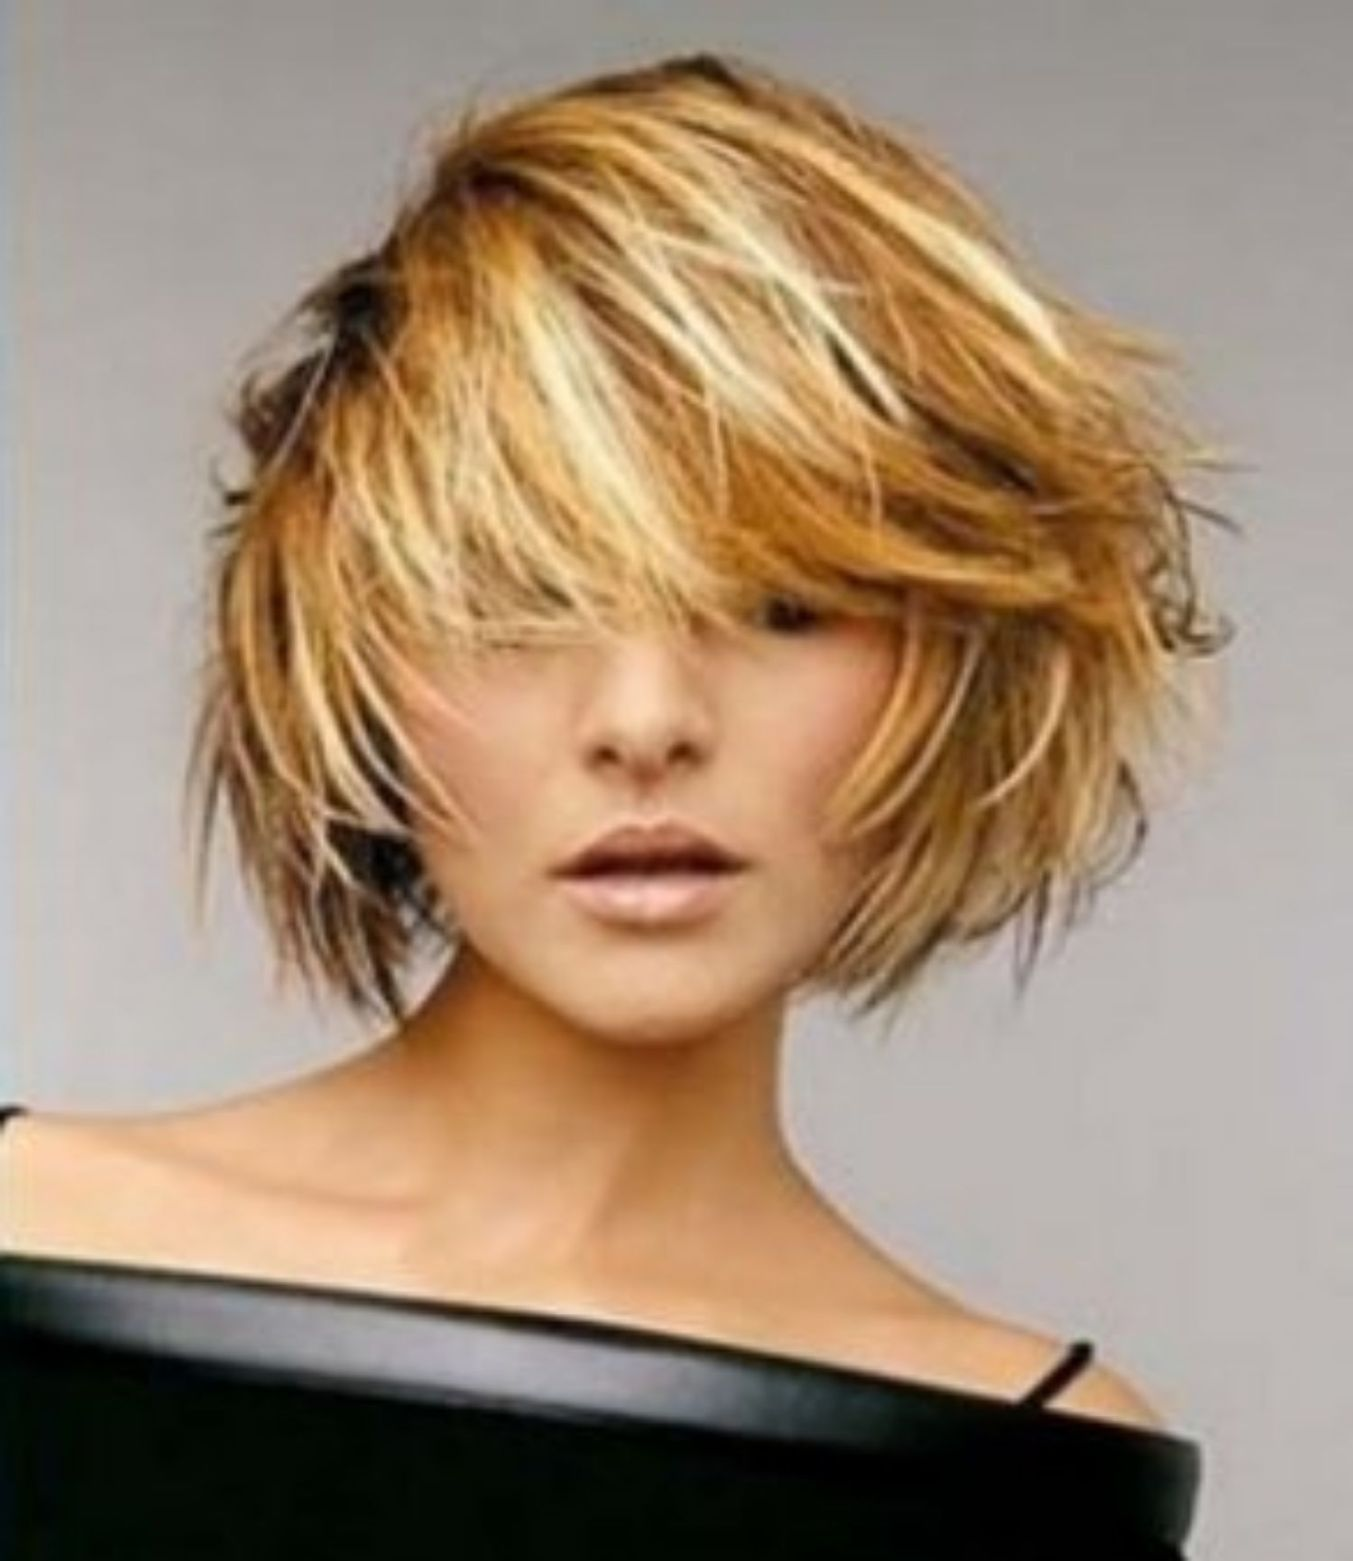 40 Best Edgy Haircuts Ideas to Upgrade Your Usual Styles 40 Best Edgy Haircuts Ideas to Upgrade Your Usual Styles